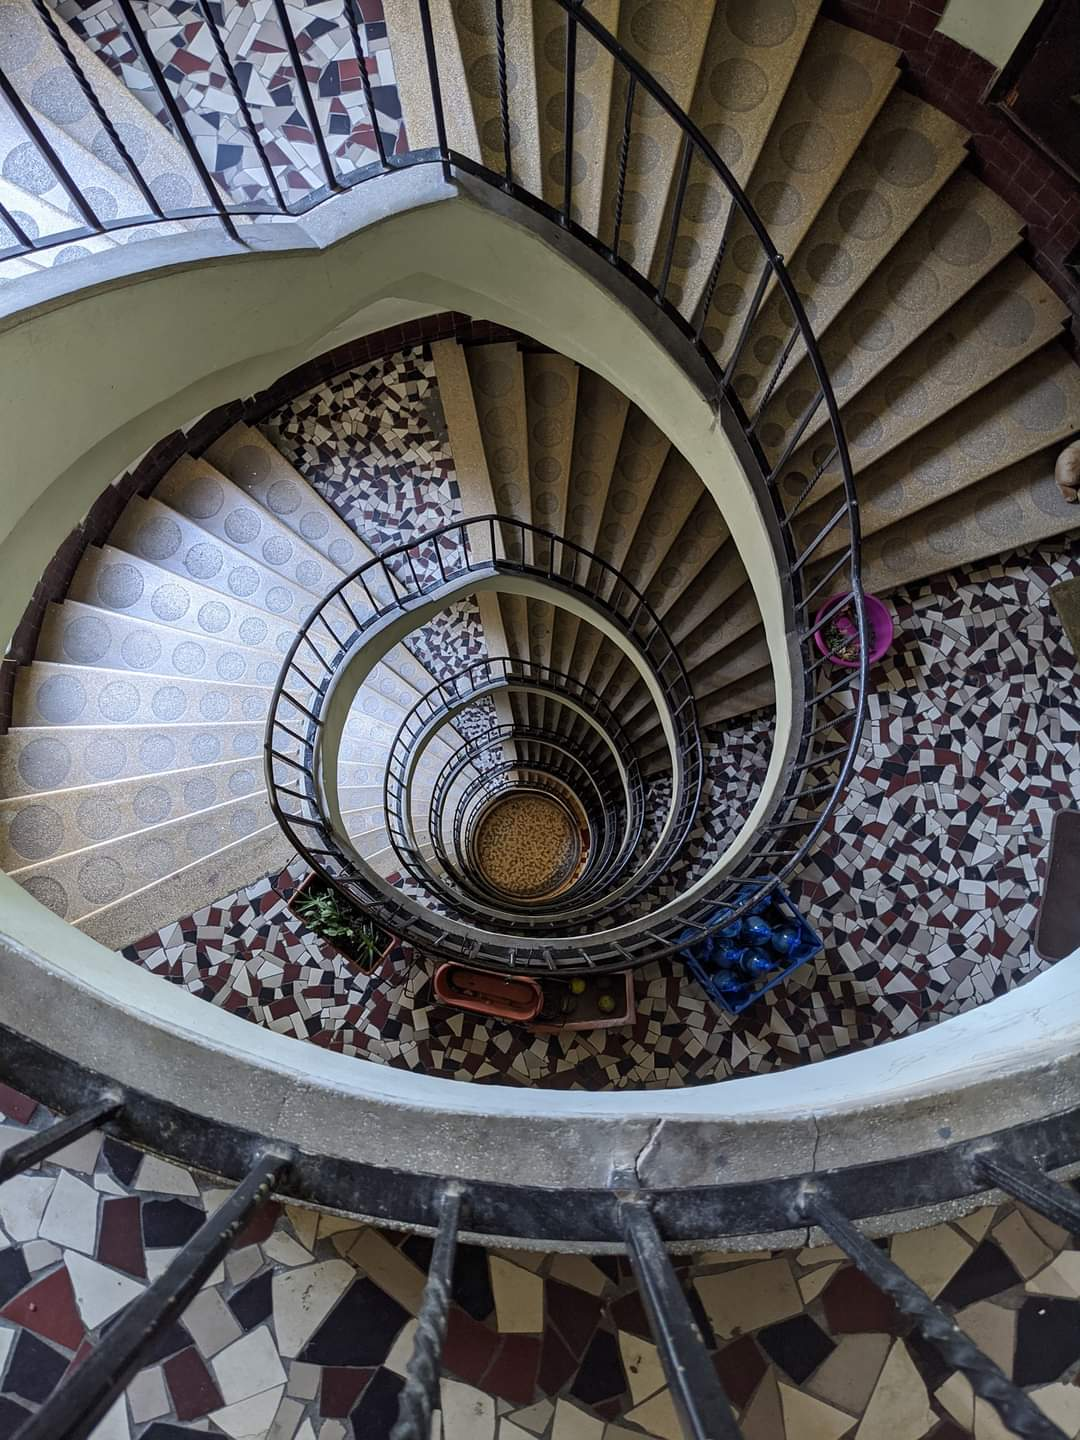 Circular stairs of a building